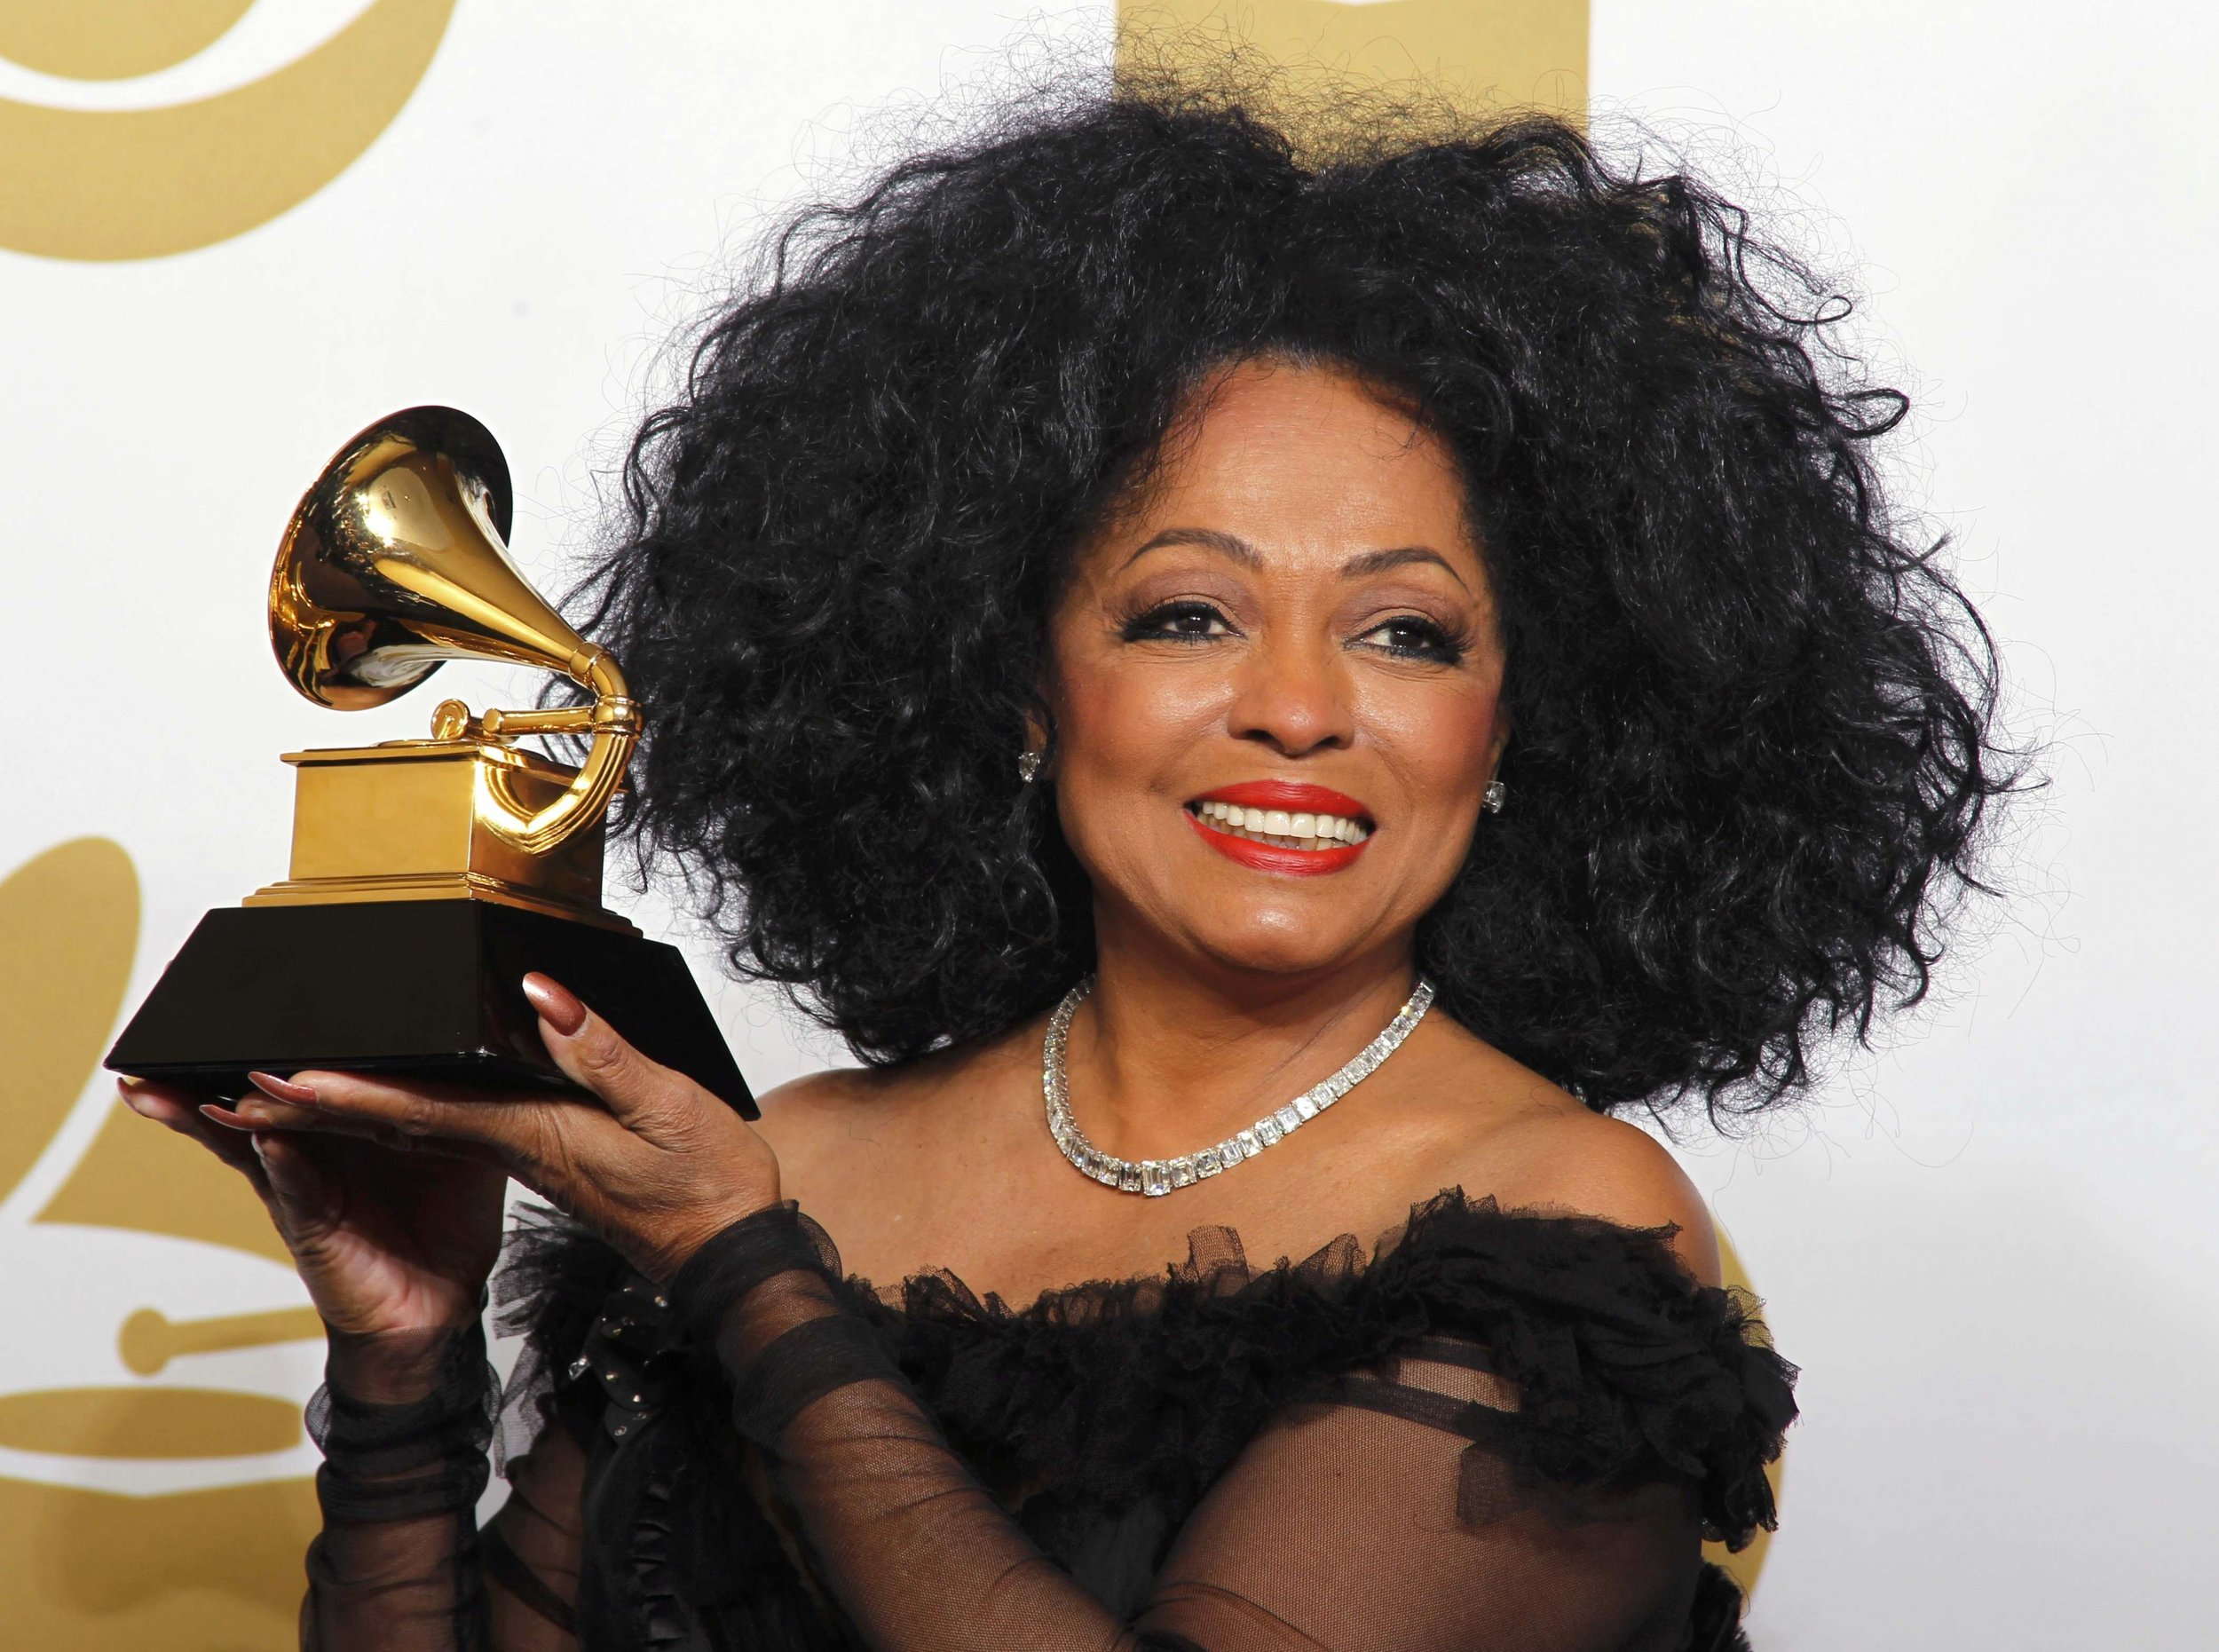 Diana_Ross_54th-GRAMMY-Press-Room_Vettri.Net-04.jpg